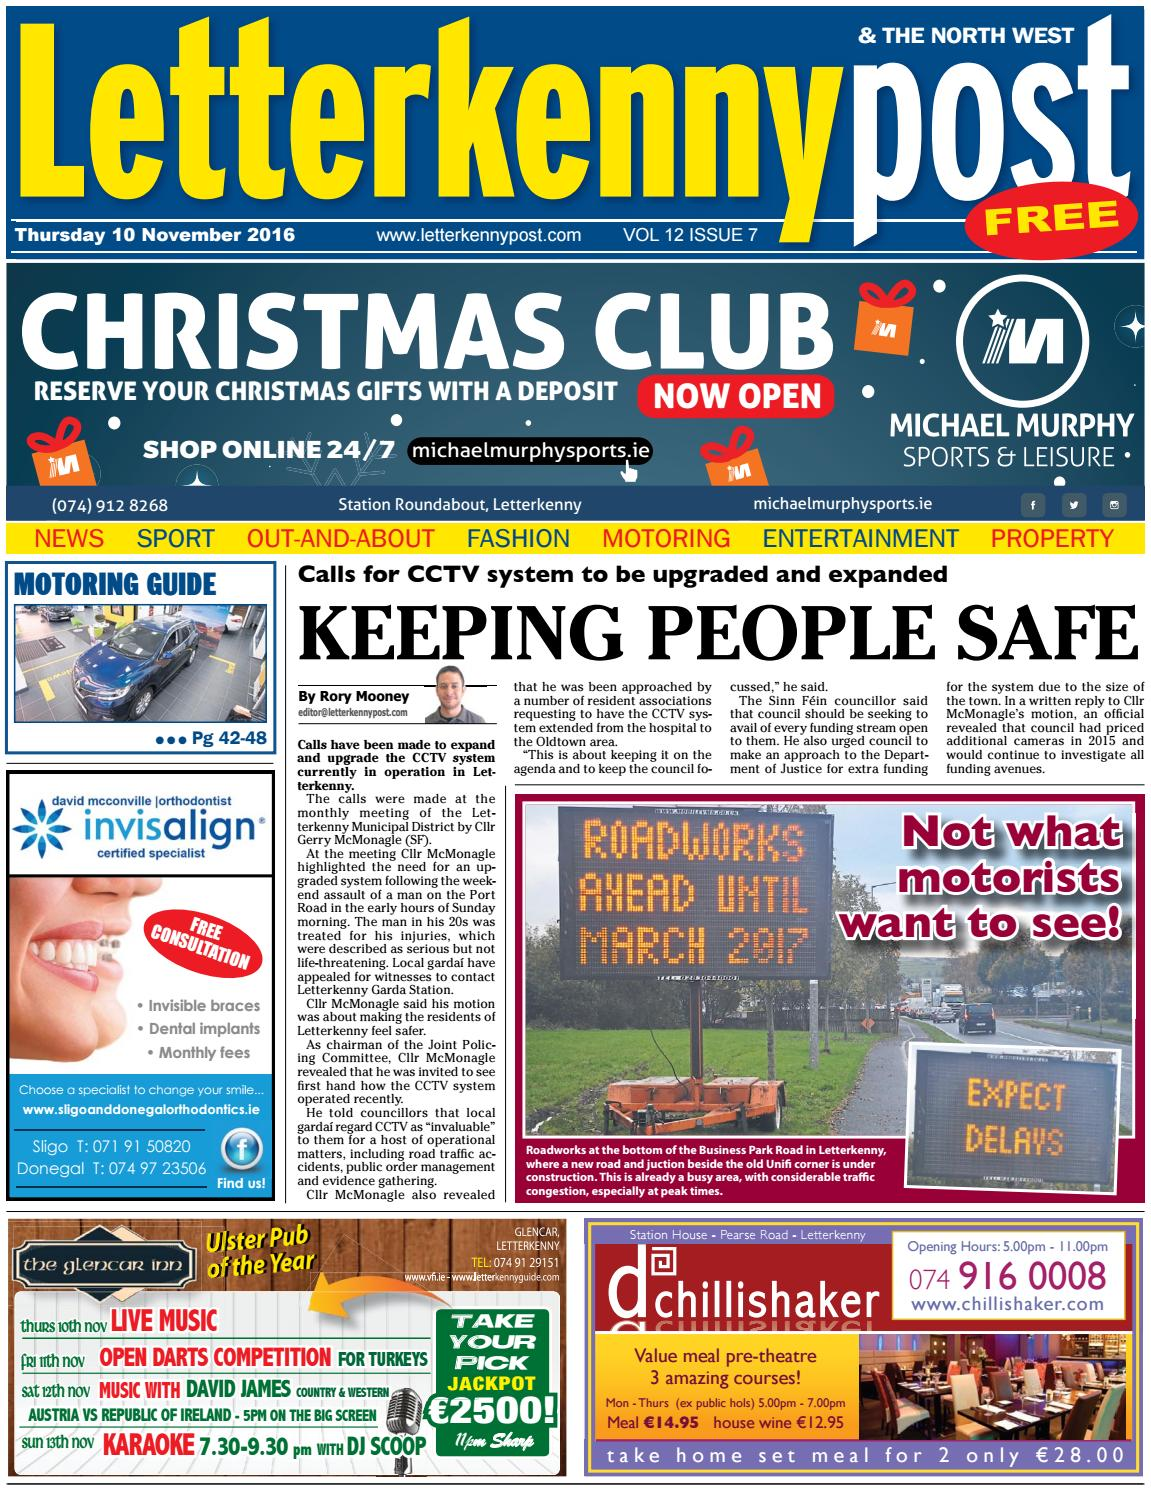 adc998c65fa Letterkenny post 10 11 16 by River Media Newspapers - issuu